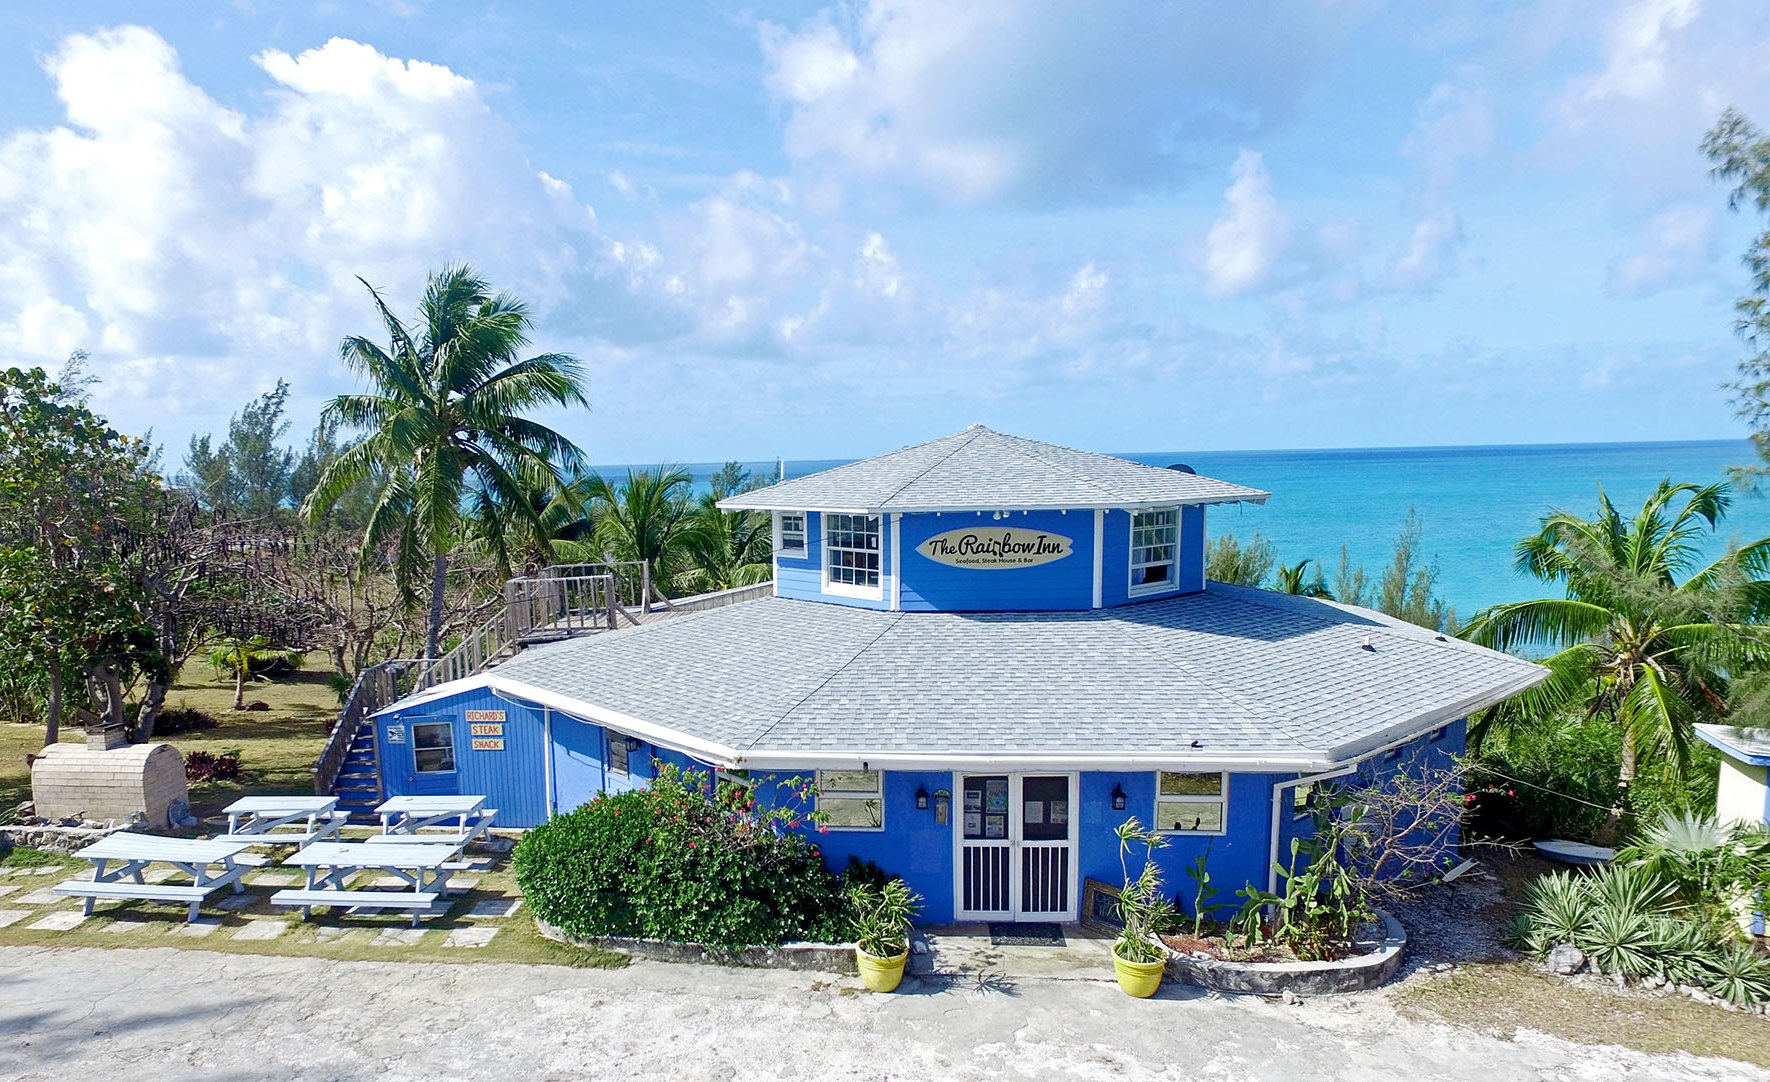 Commercial for Sale at Boutique Resort - Investment Opportunity! MLS 22936 Rainbow Bay, Eleuthera, Bahamas